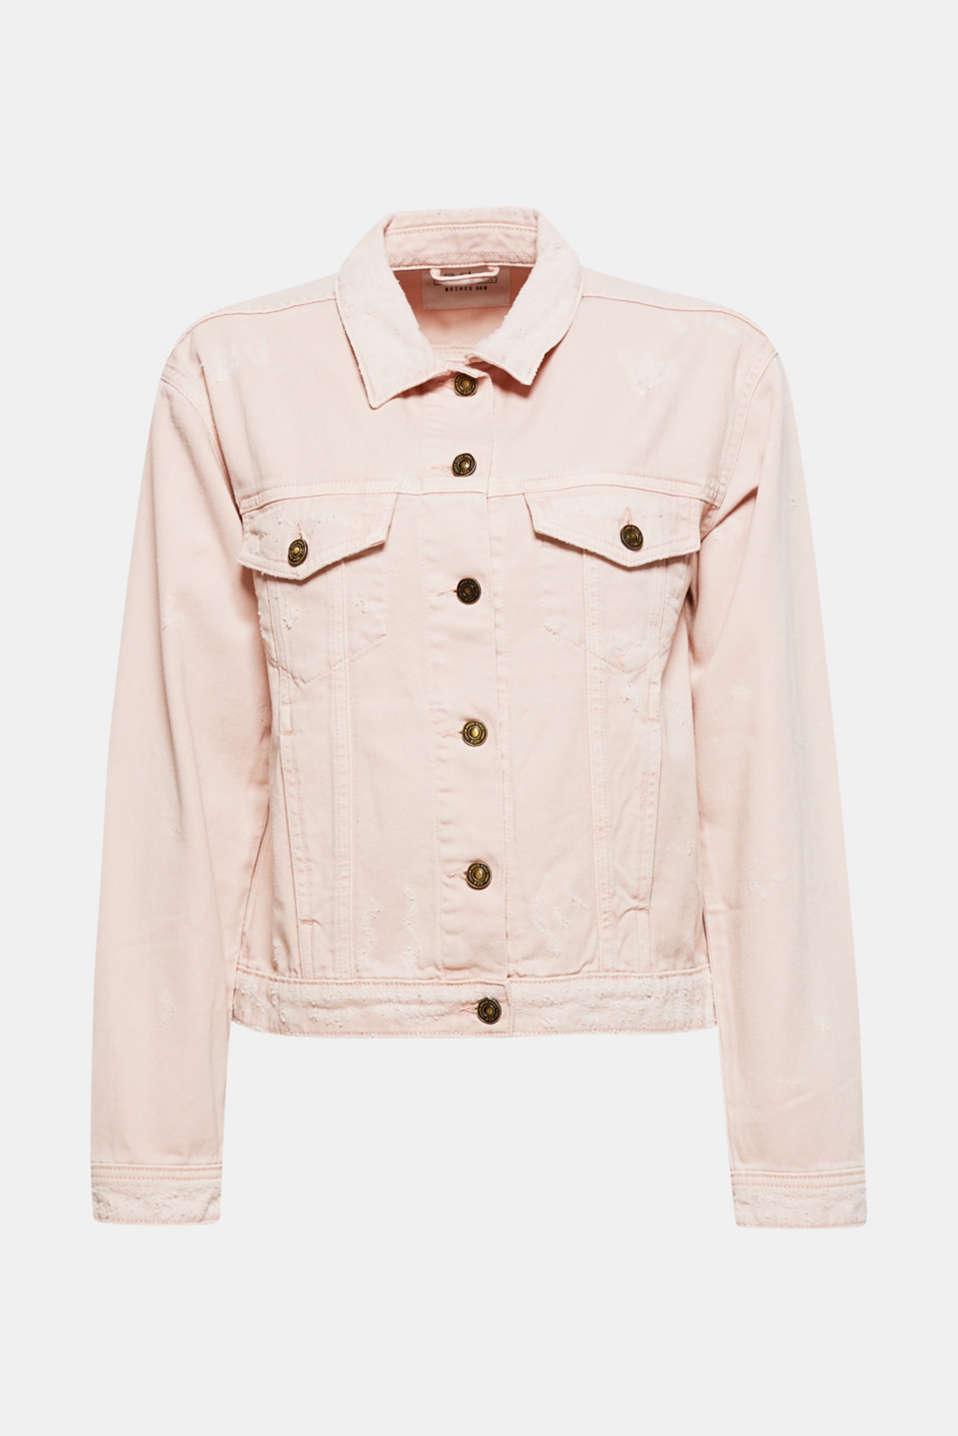 The cool, distressed finish and soft pastel colour give this casual cut denim jacket its trendy summer look.